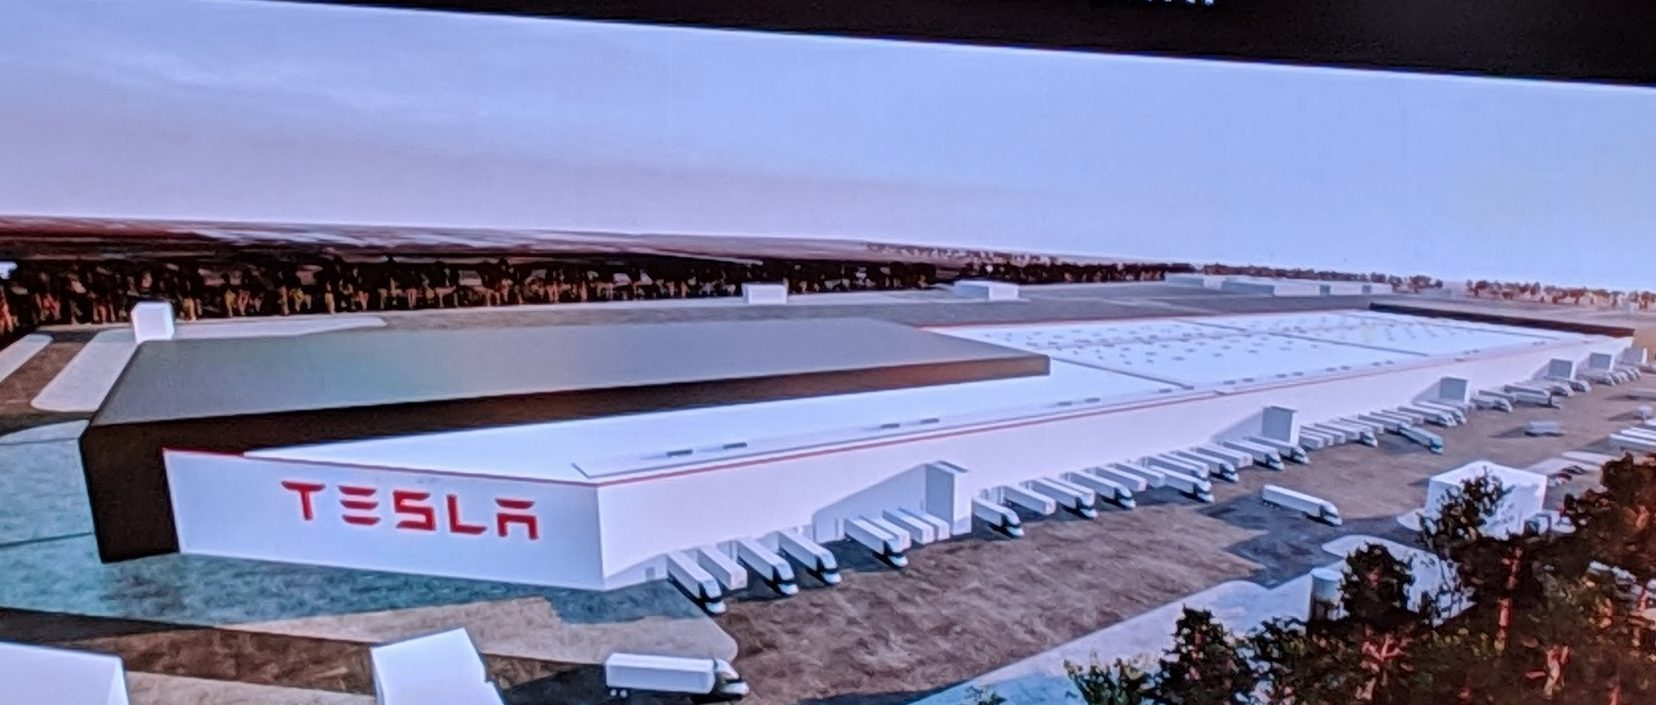 Elon Musk: Tesla is going to build Gigafactory 4 in 'Berlin area'